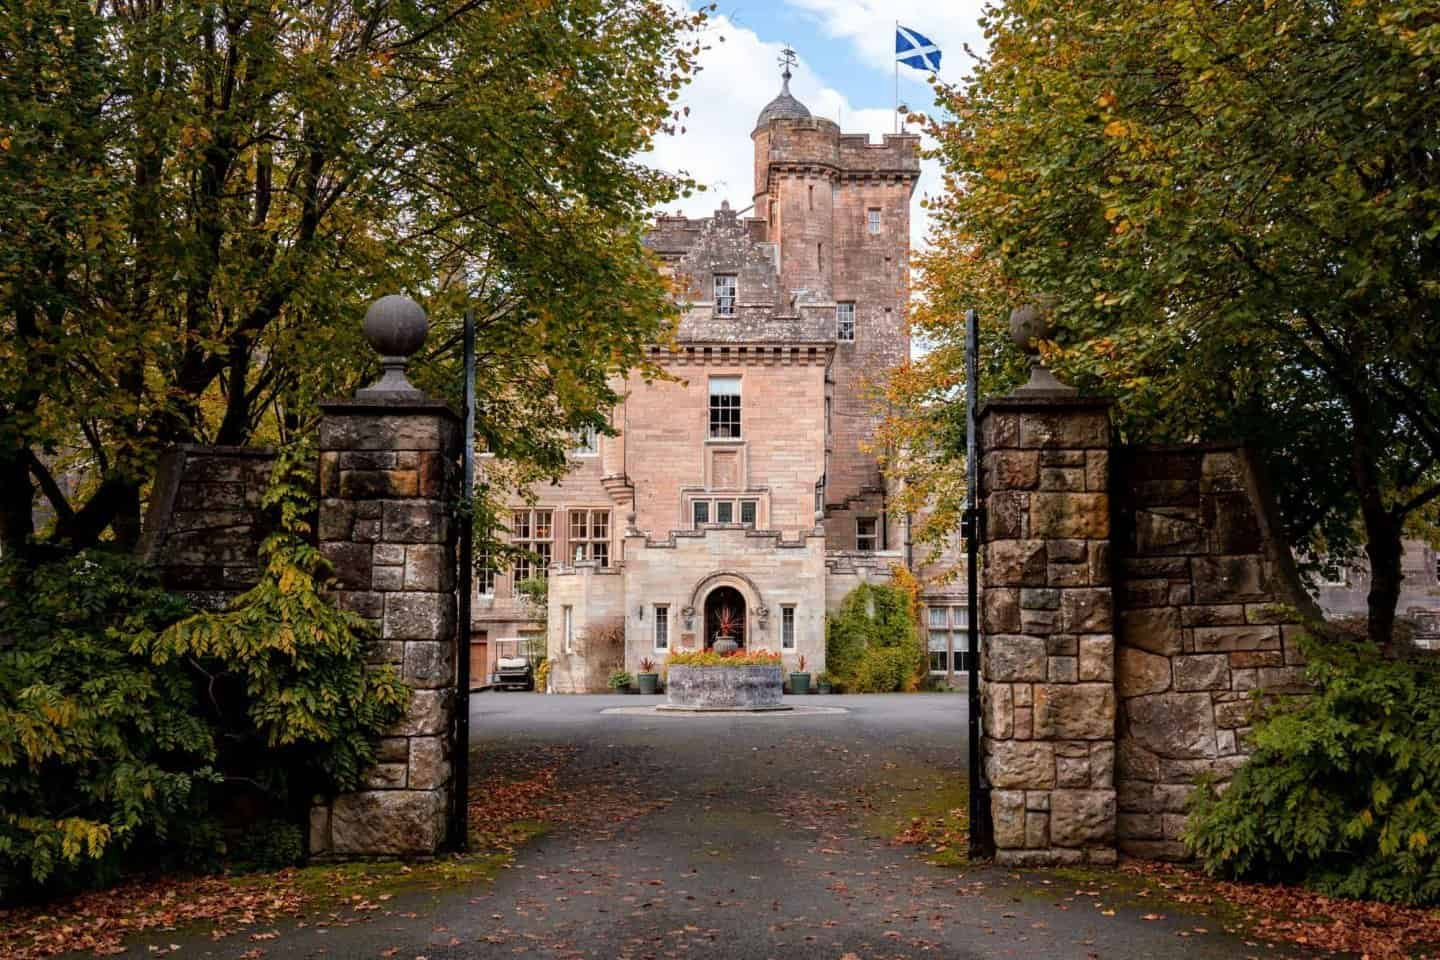 Driveway gated entrance to Glenapp Castle Ayshire Scotland